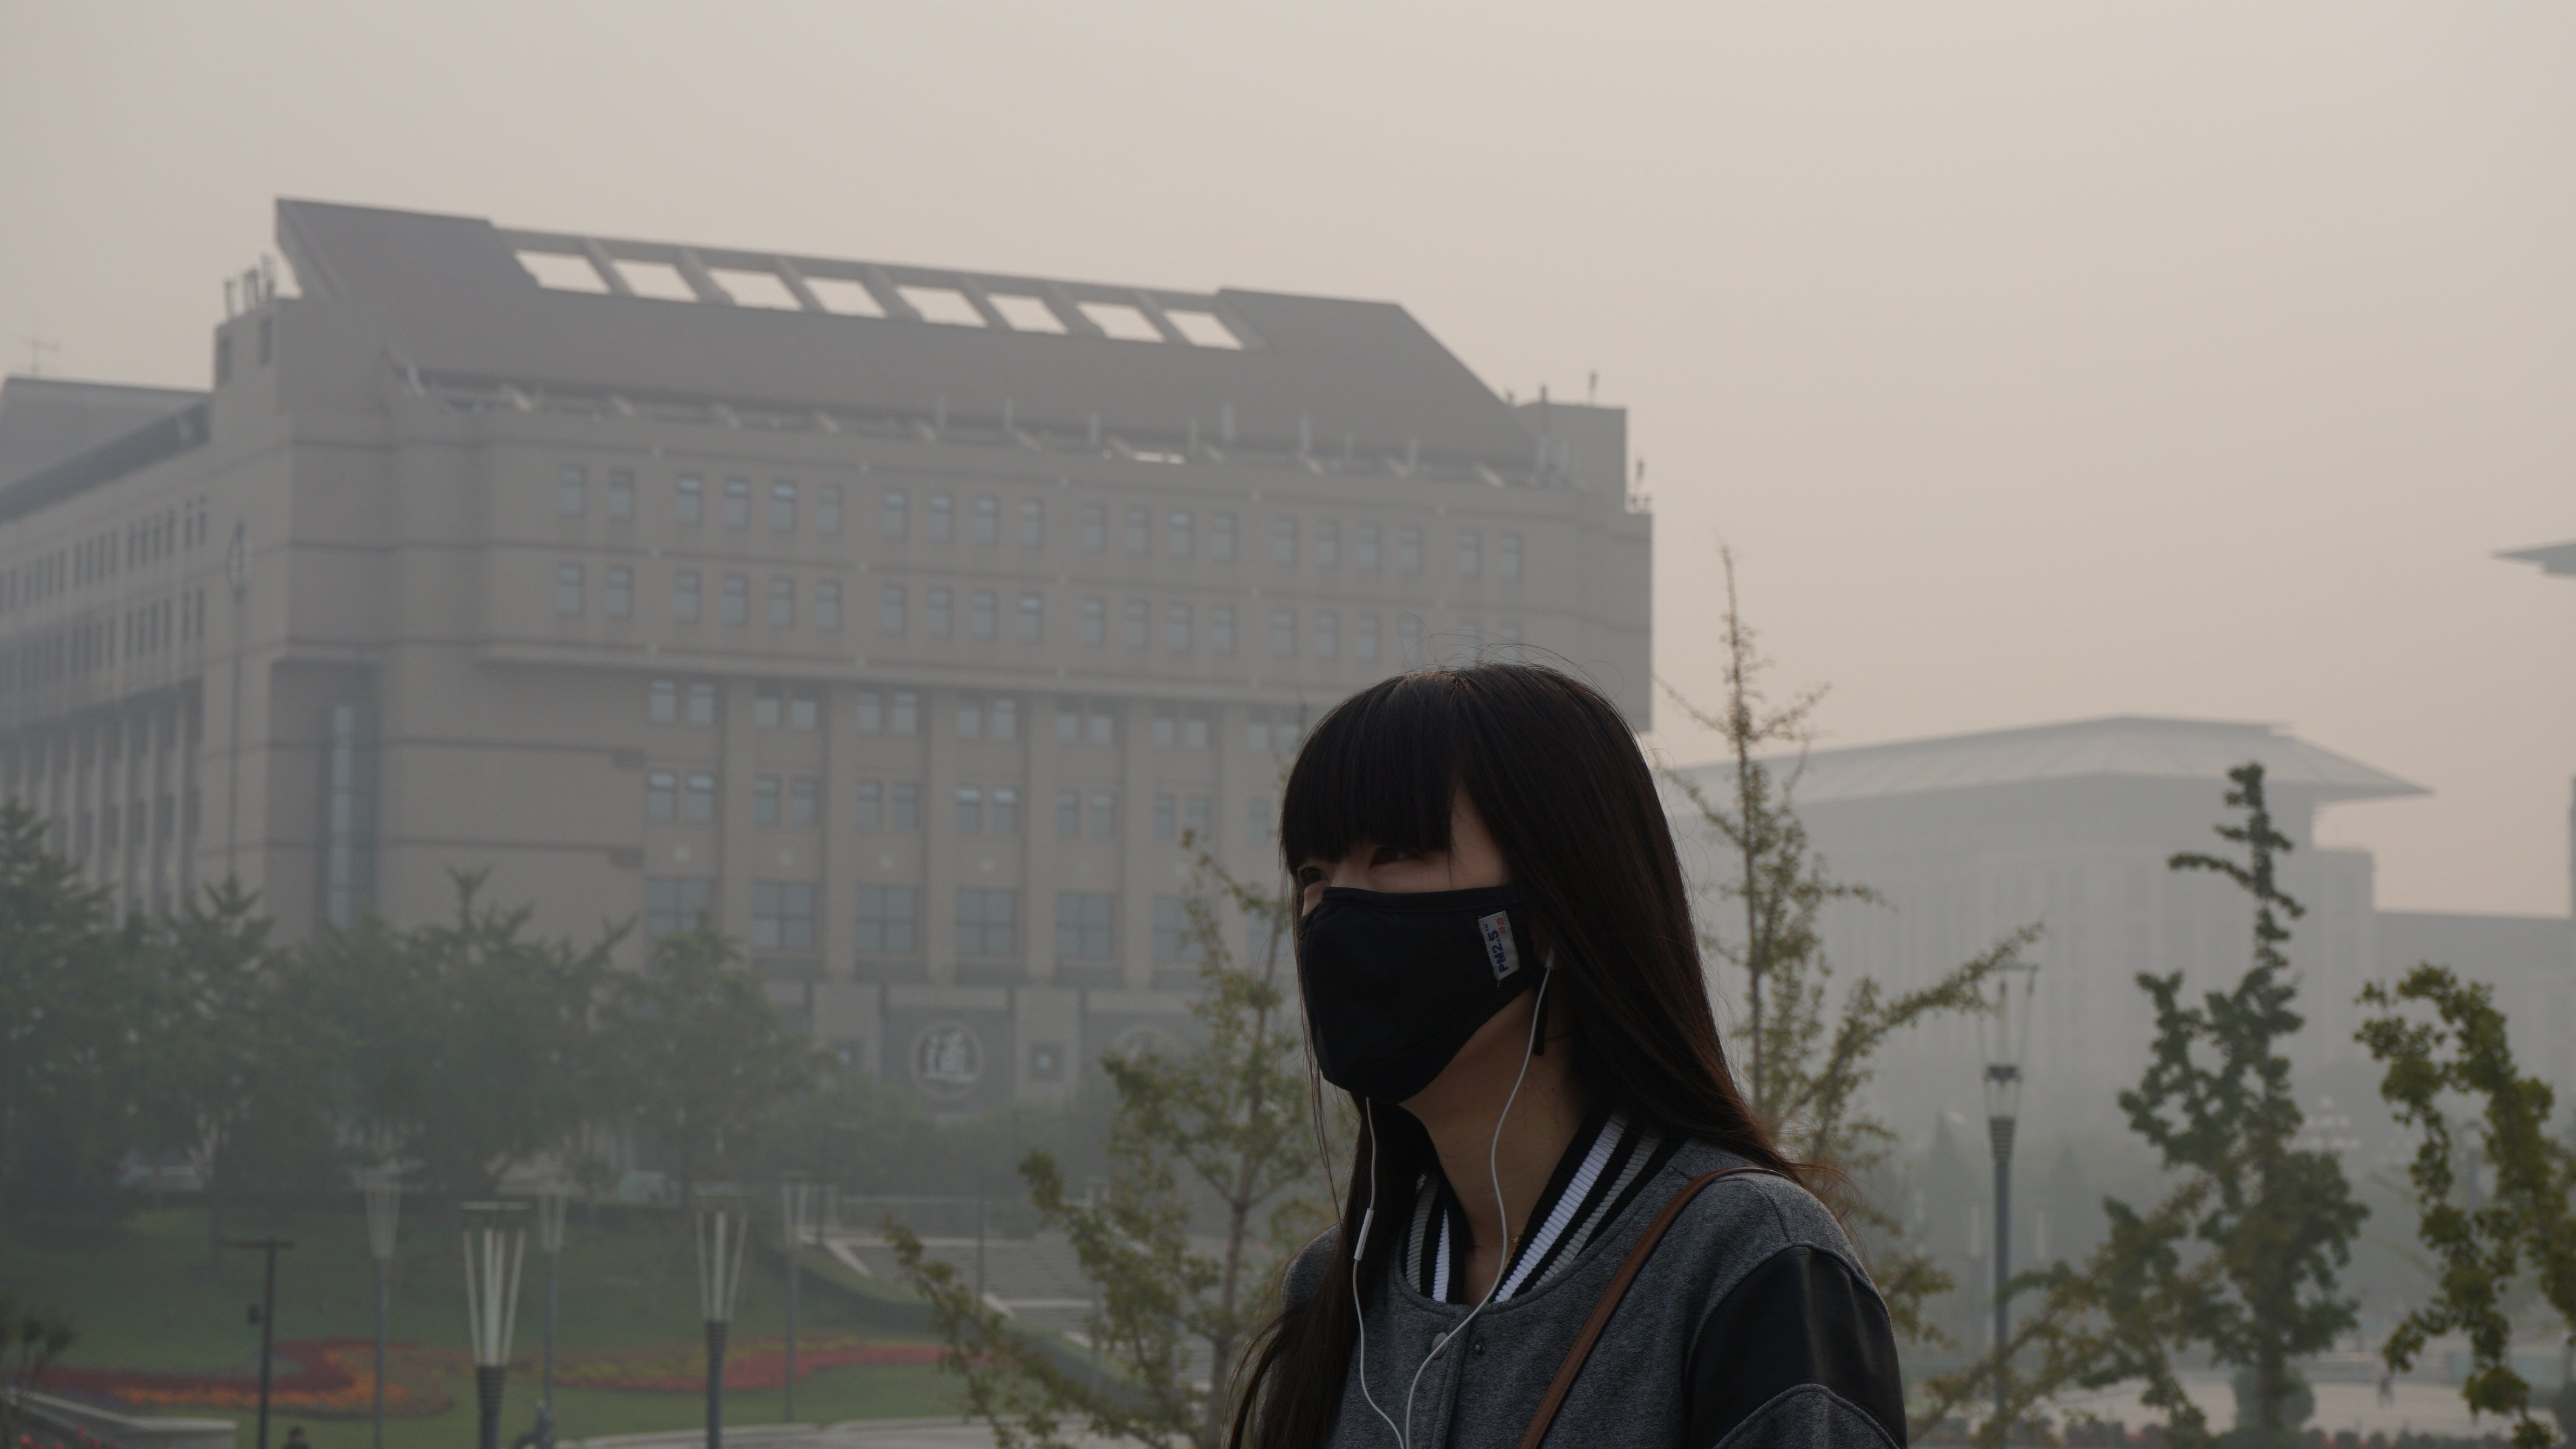 Even China's State News Agency Thinks the Pollution